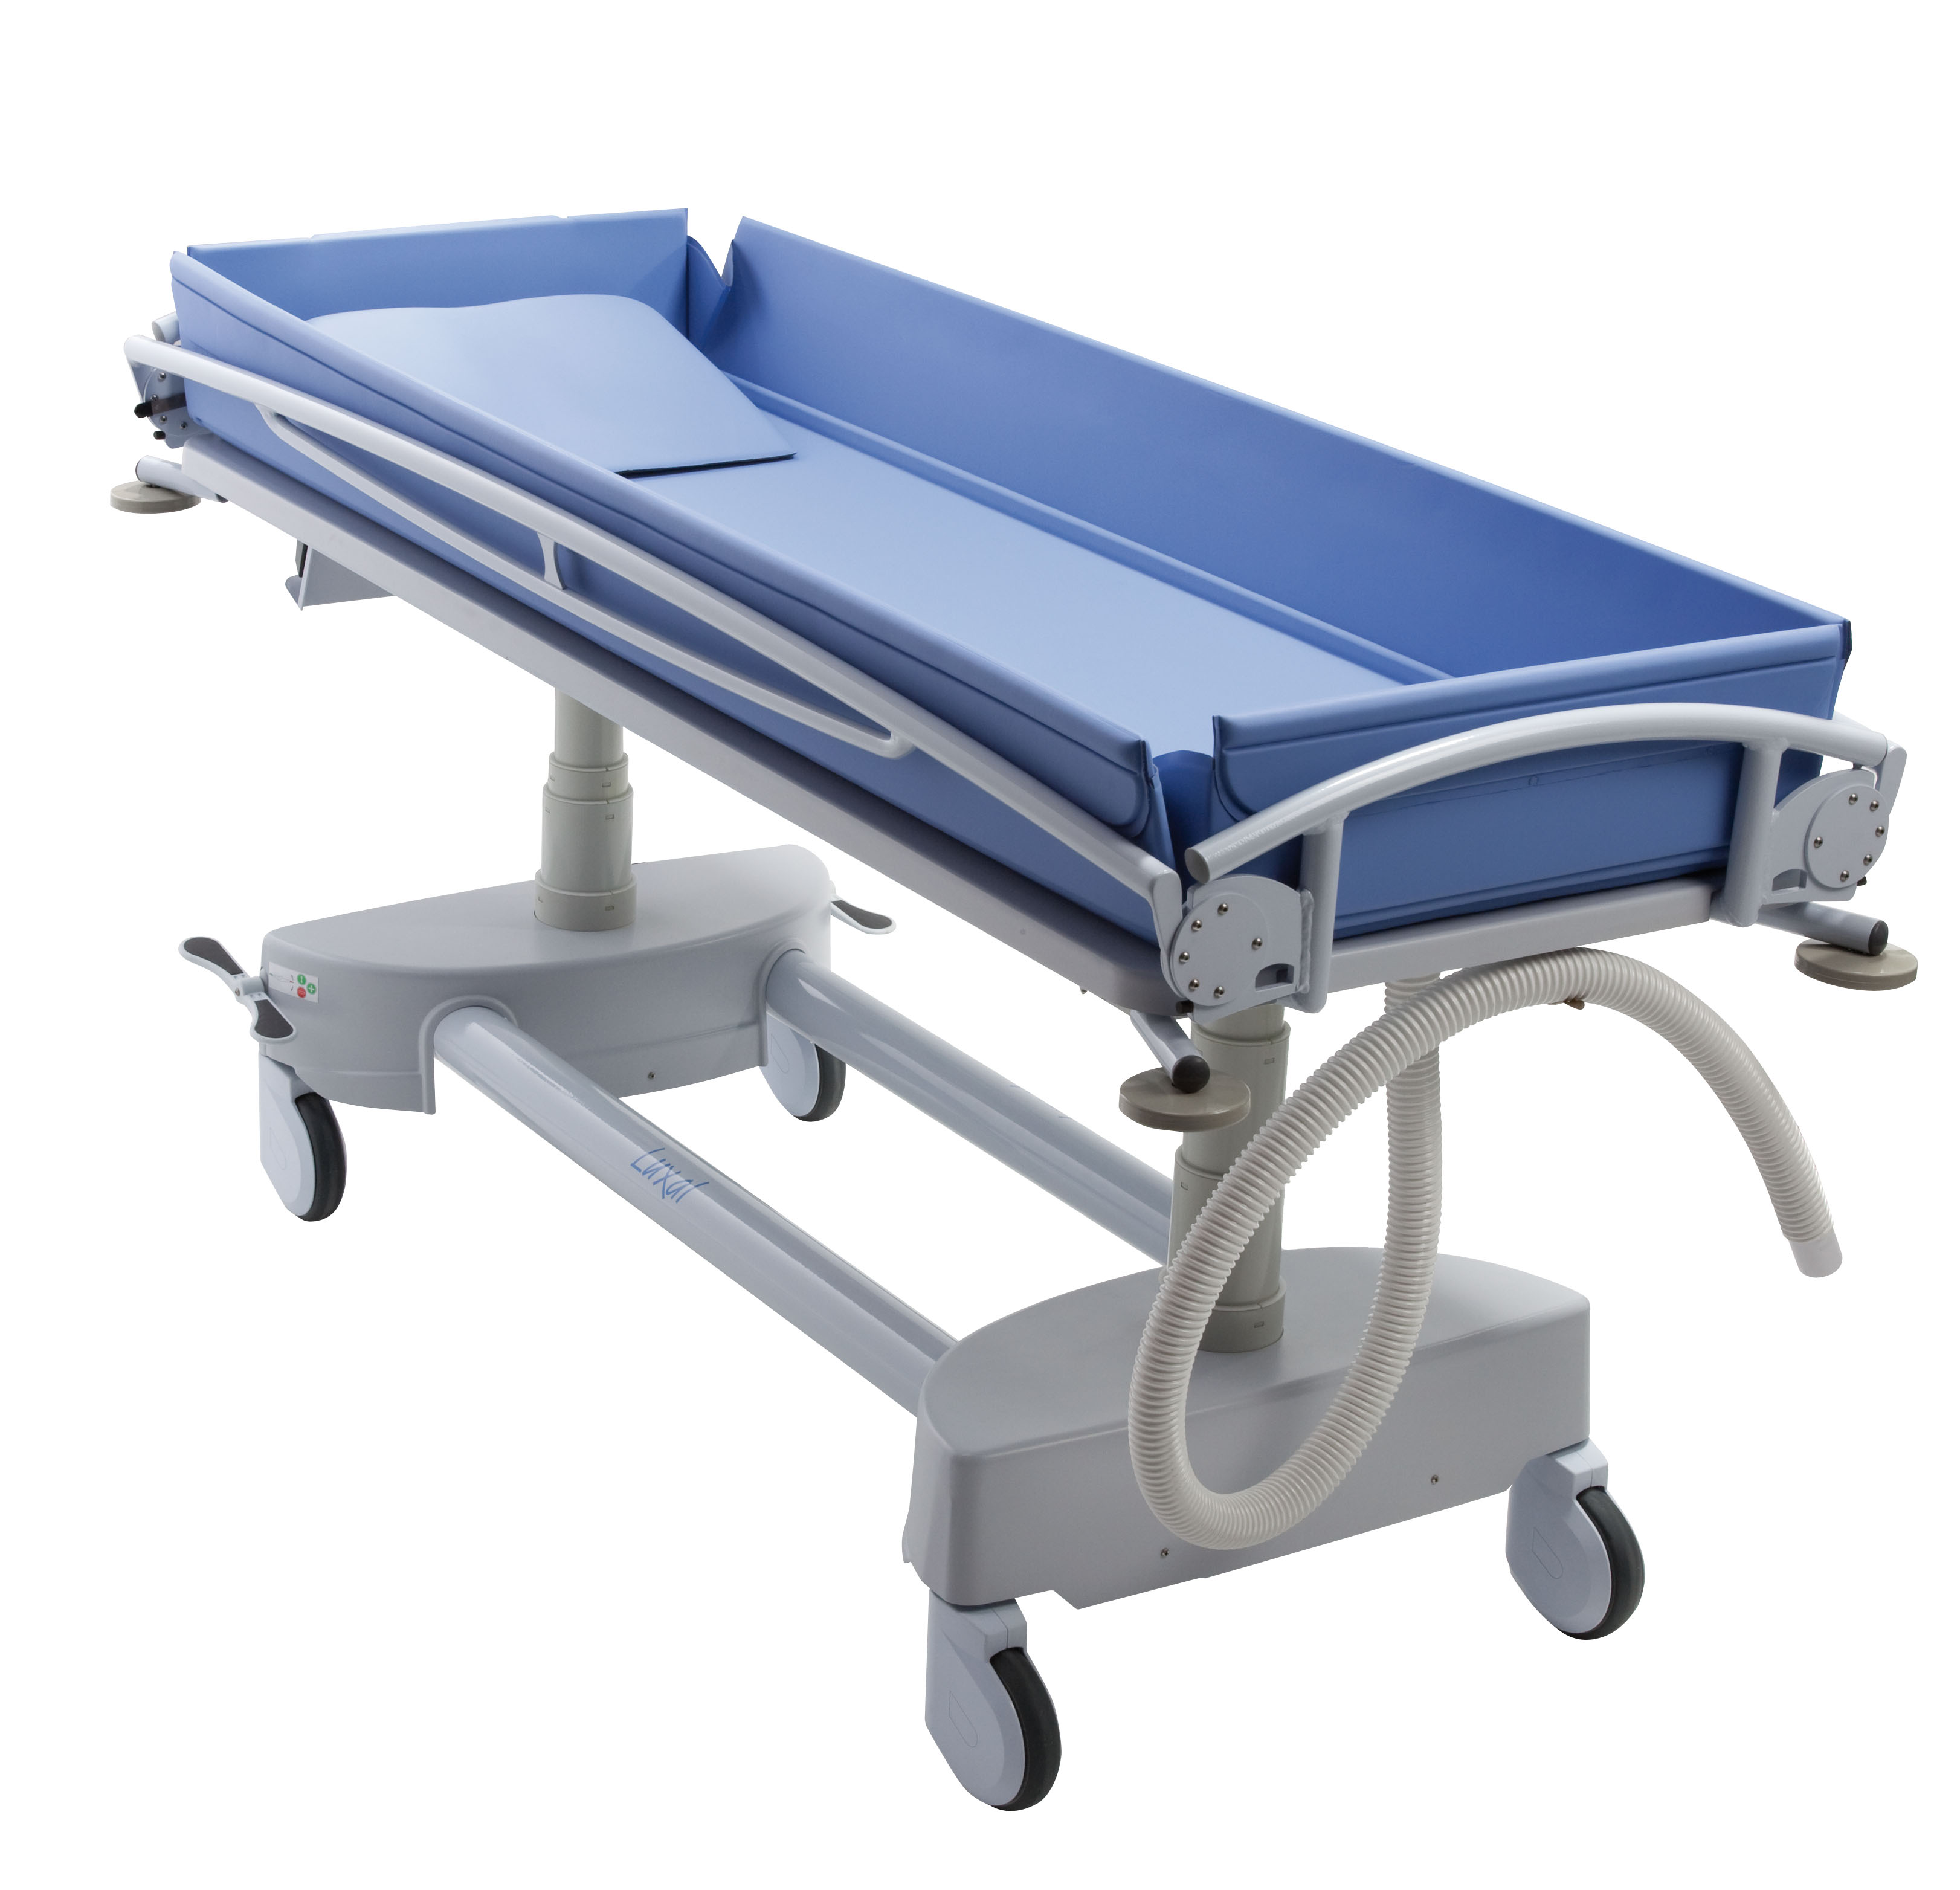 fixed bathing solutions shower medical and stretcher handling height trolley moving uk product prism freeway